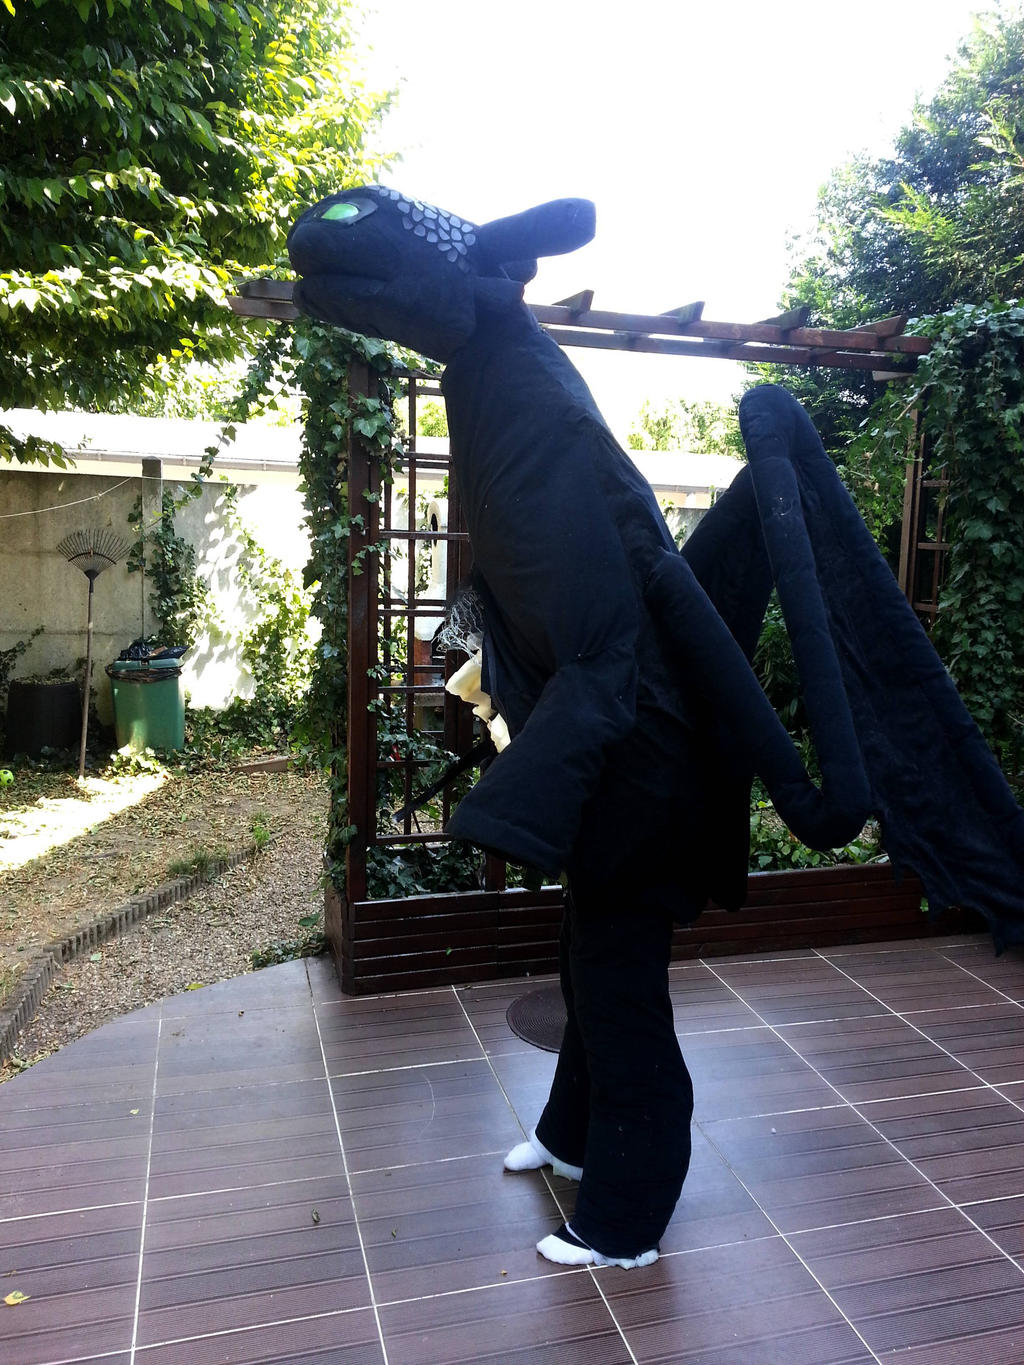 Toothless How To Train Your Dragon Quadsuit Part18 By Chirunocosplay  Toothless How To Train Your Dragon